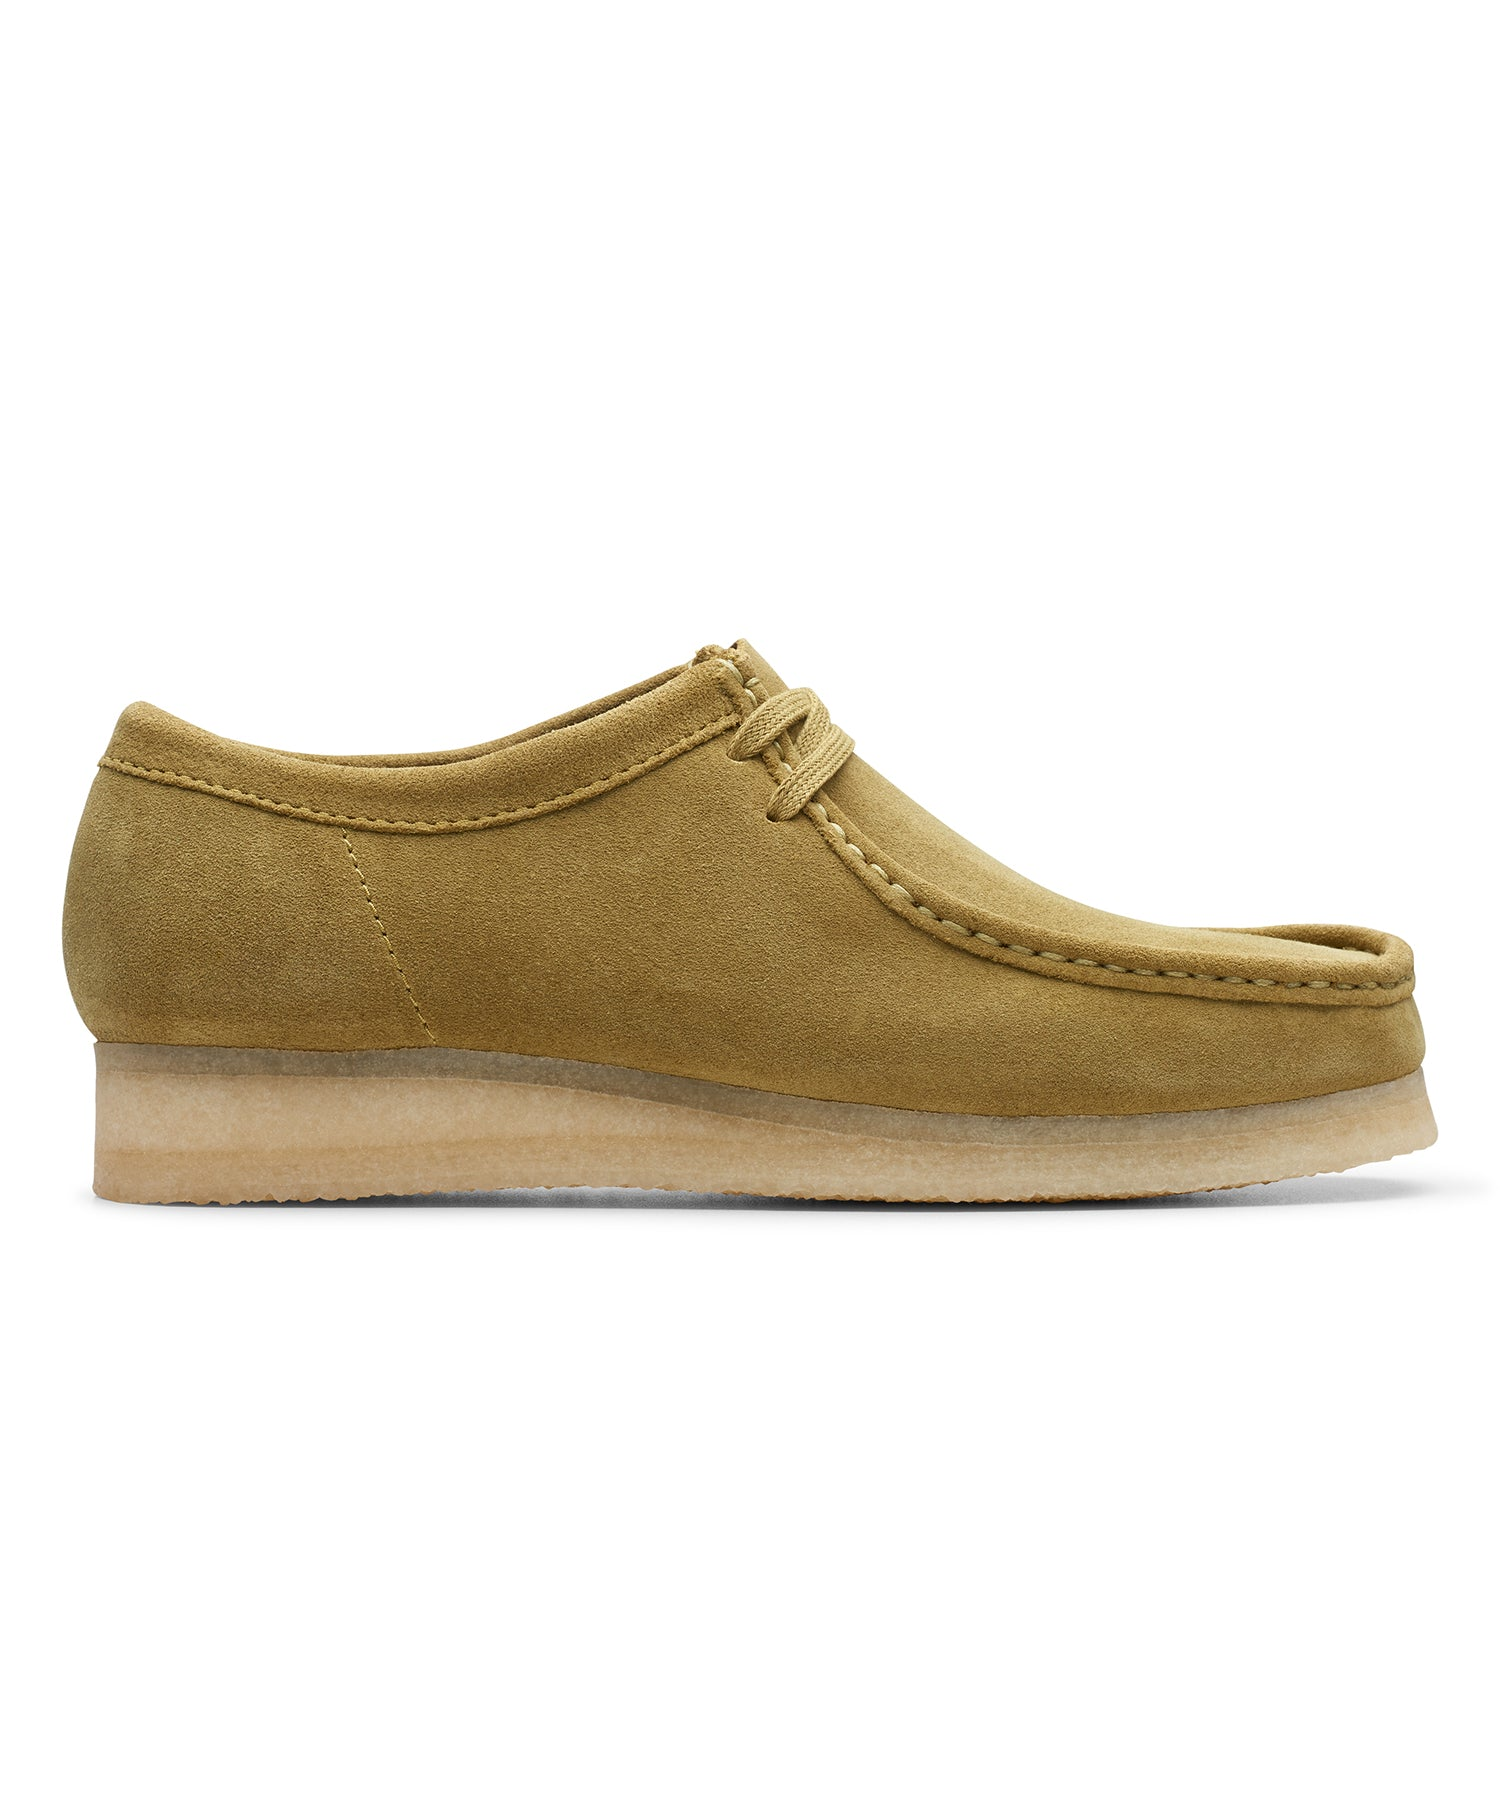 Clarks Wallabee in Khaki Suede